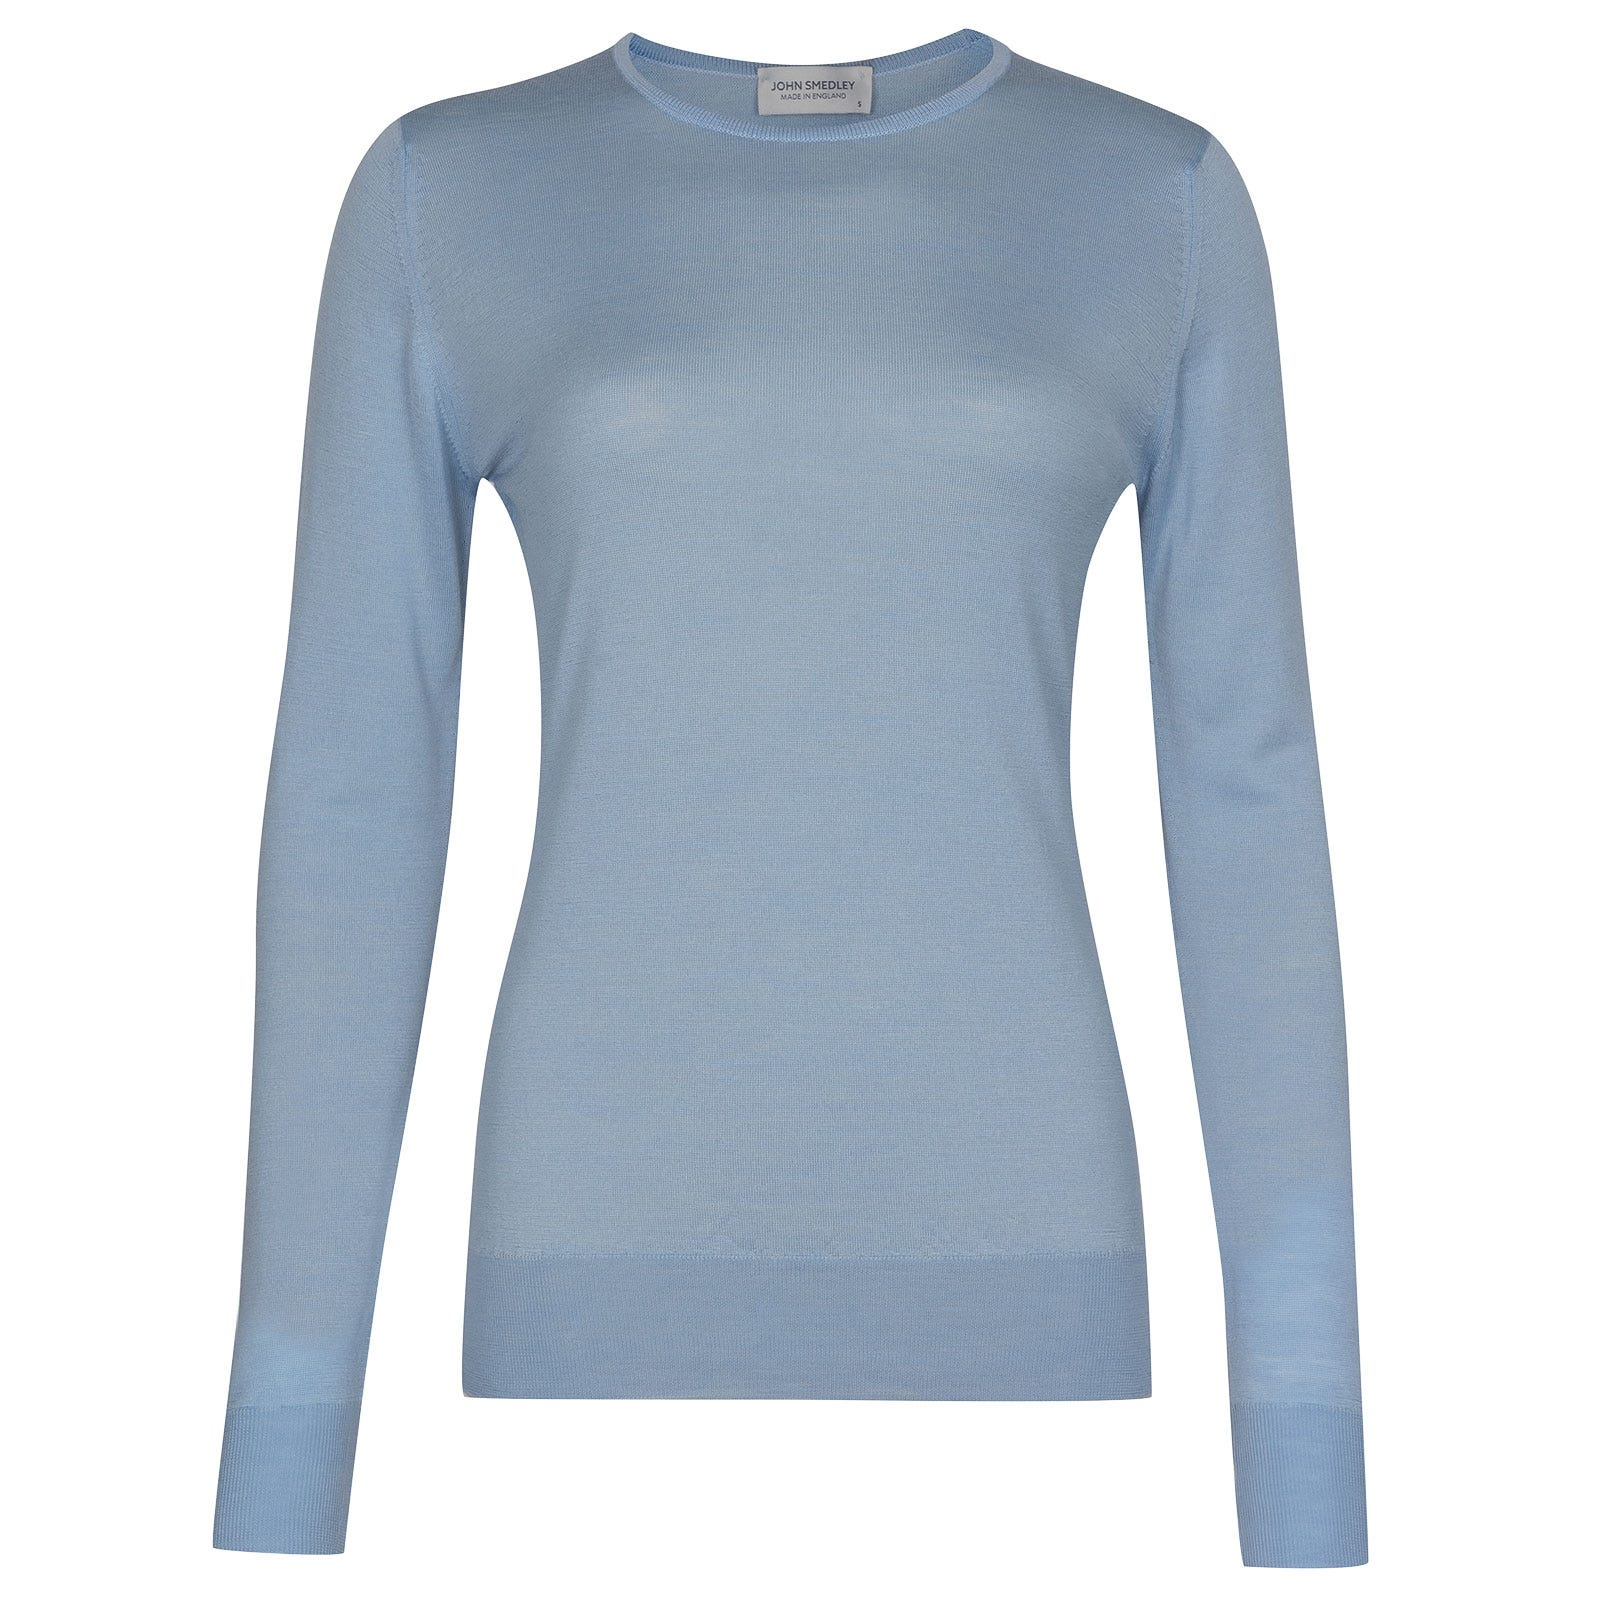 John Smedley Geranium in Dusk Blue Merino Wool Sweater-LGE